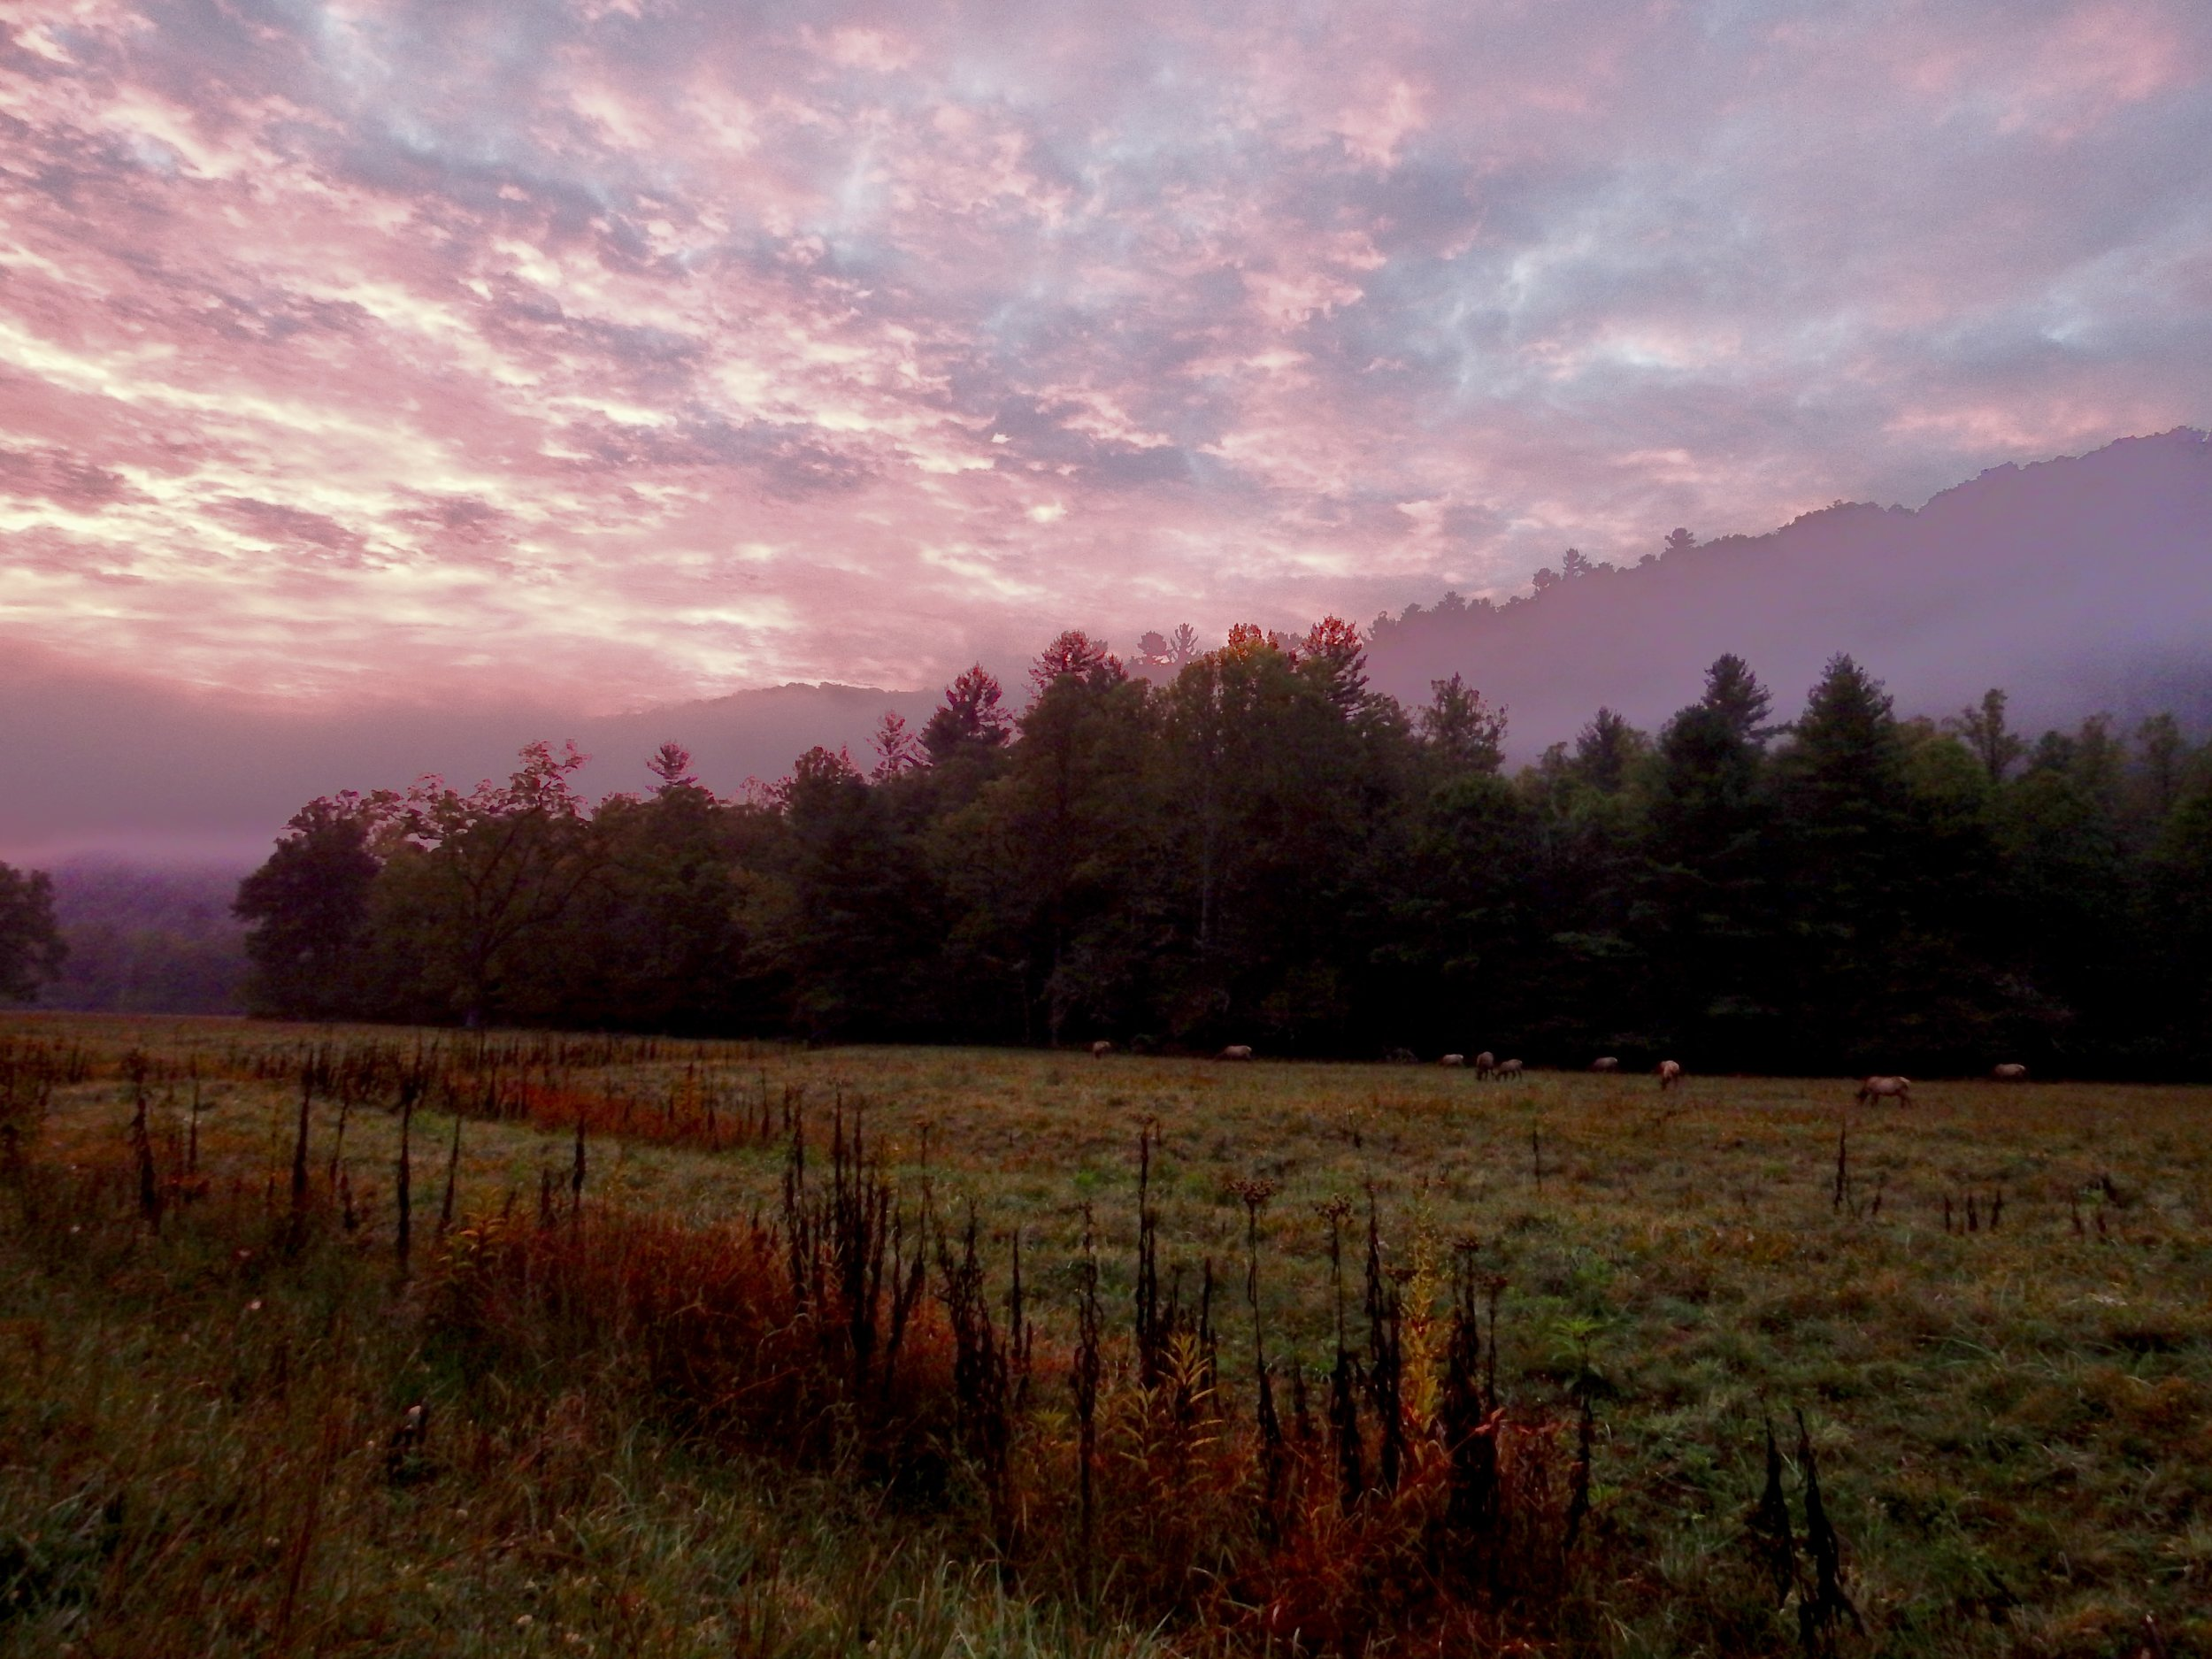 Sunrise in Cataloochee Valley…a herd of elk barely visible in the background.